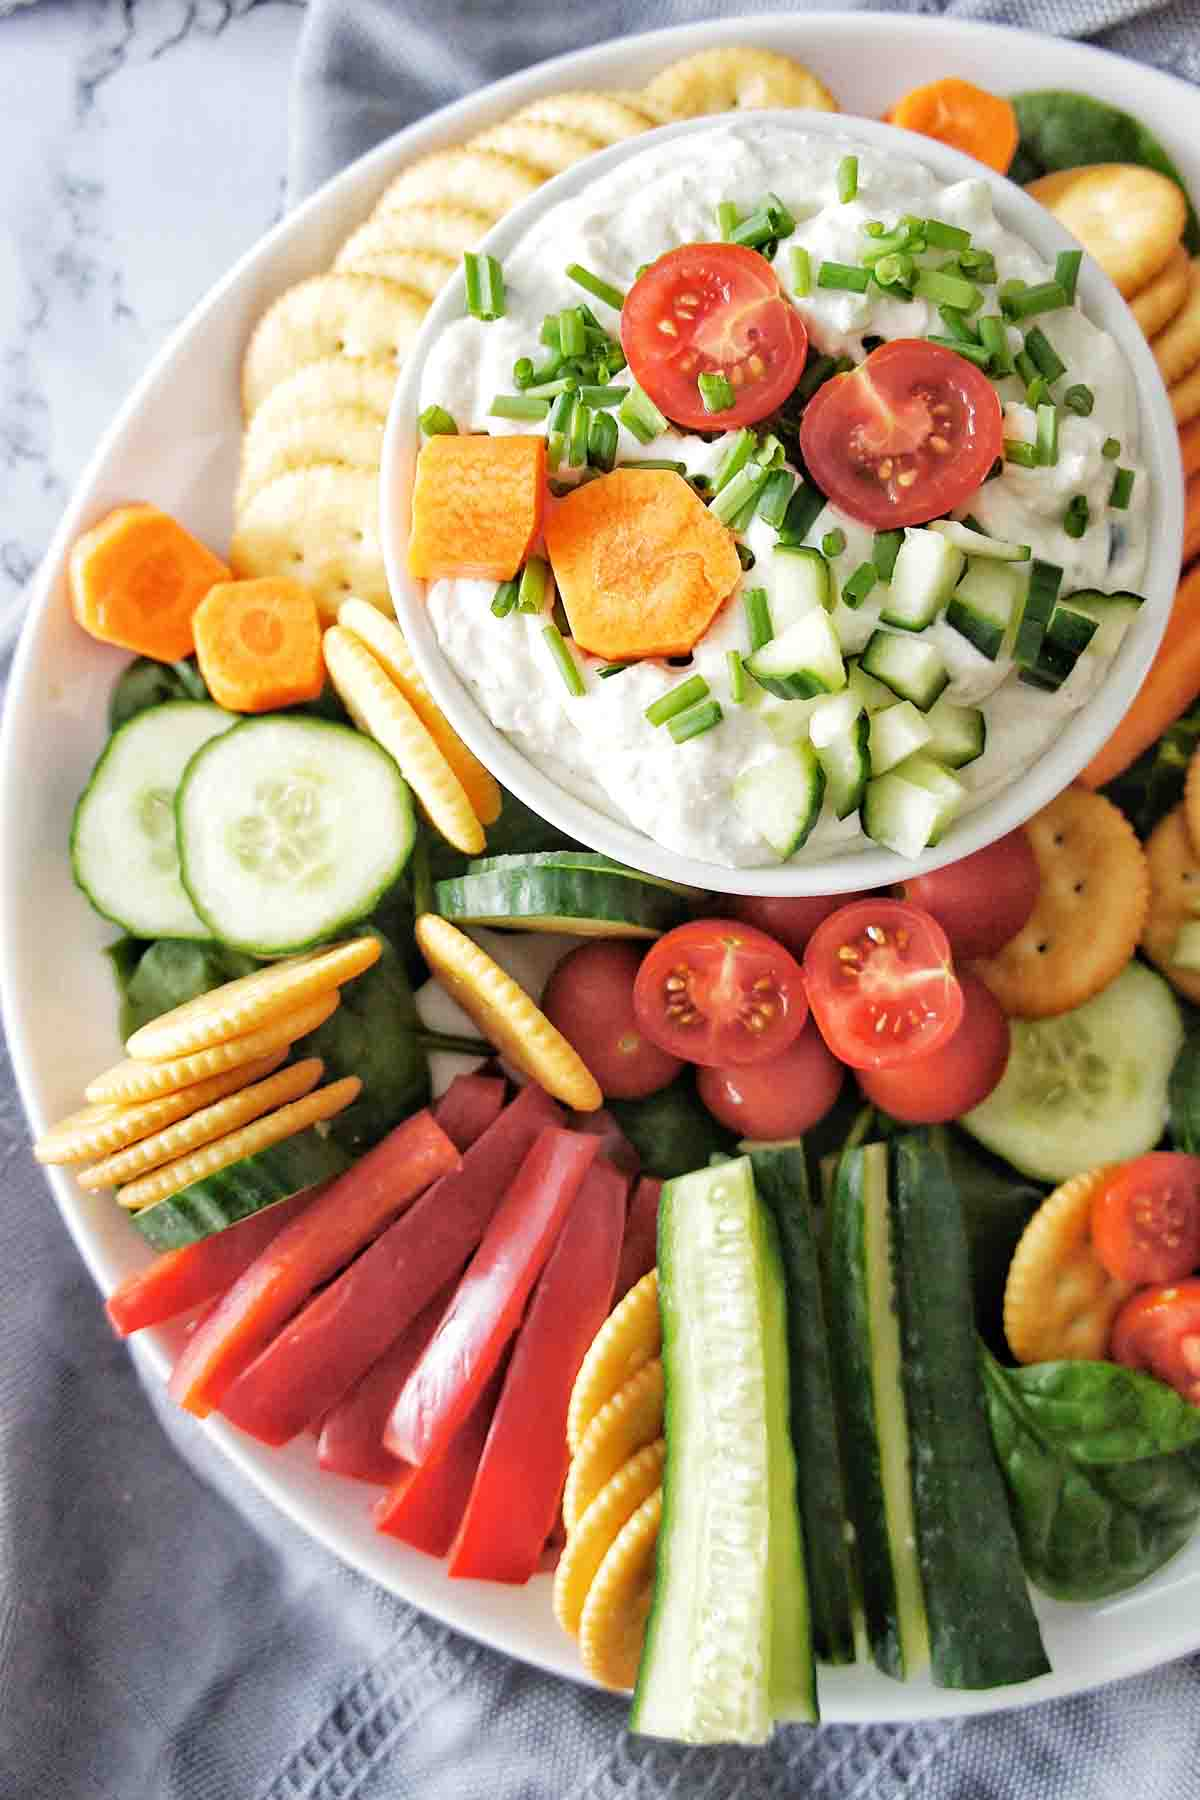 Cottage Cheese Dip on a large platter with veggies and crackers